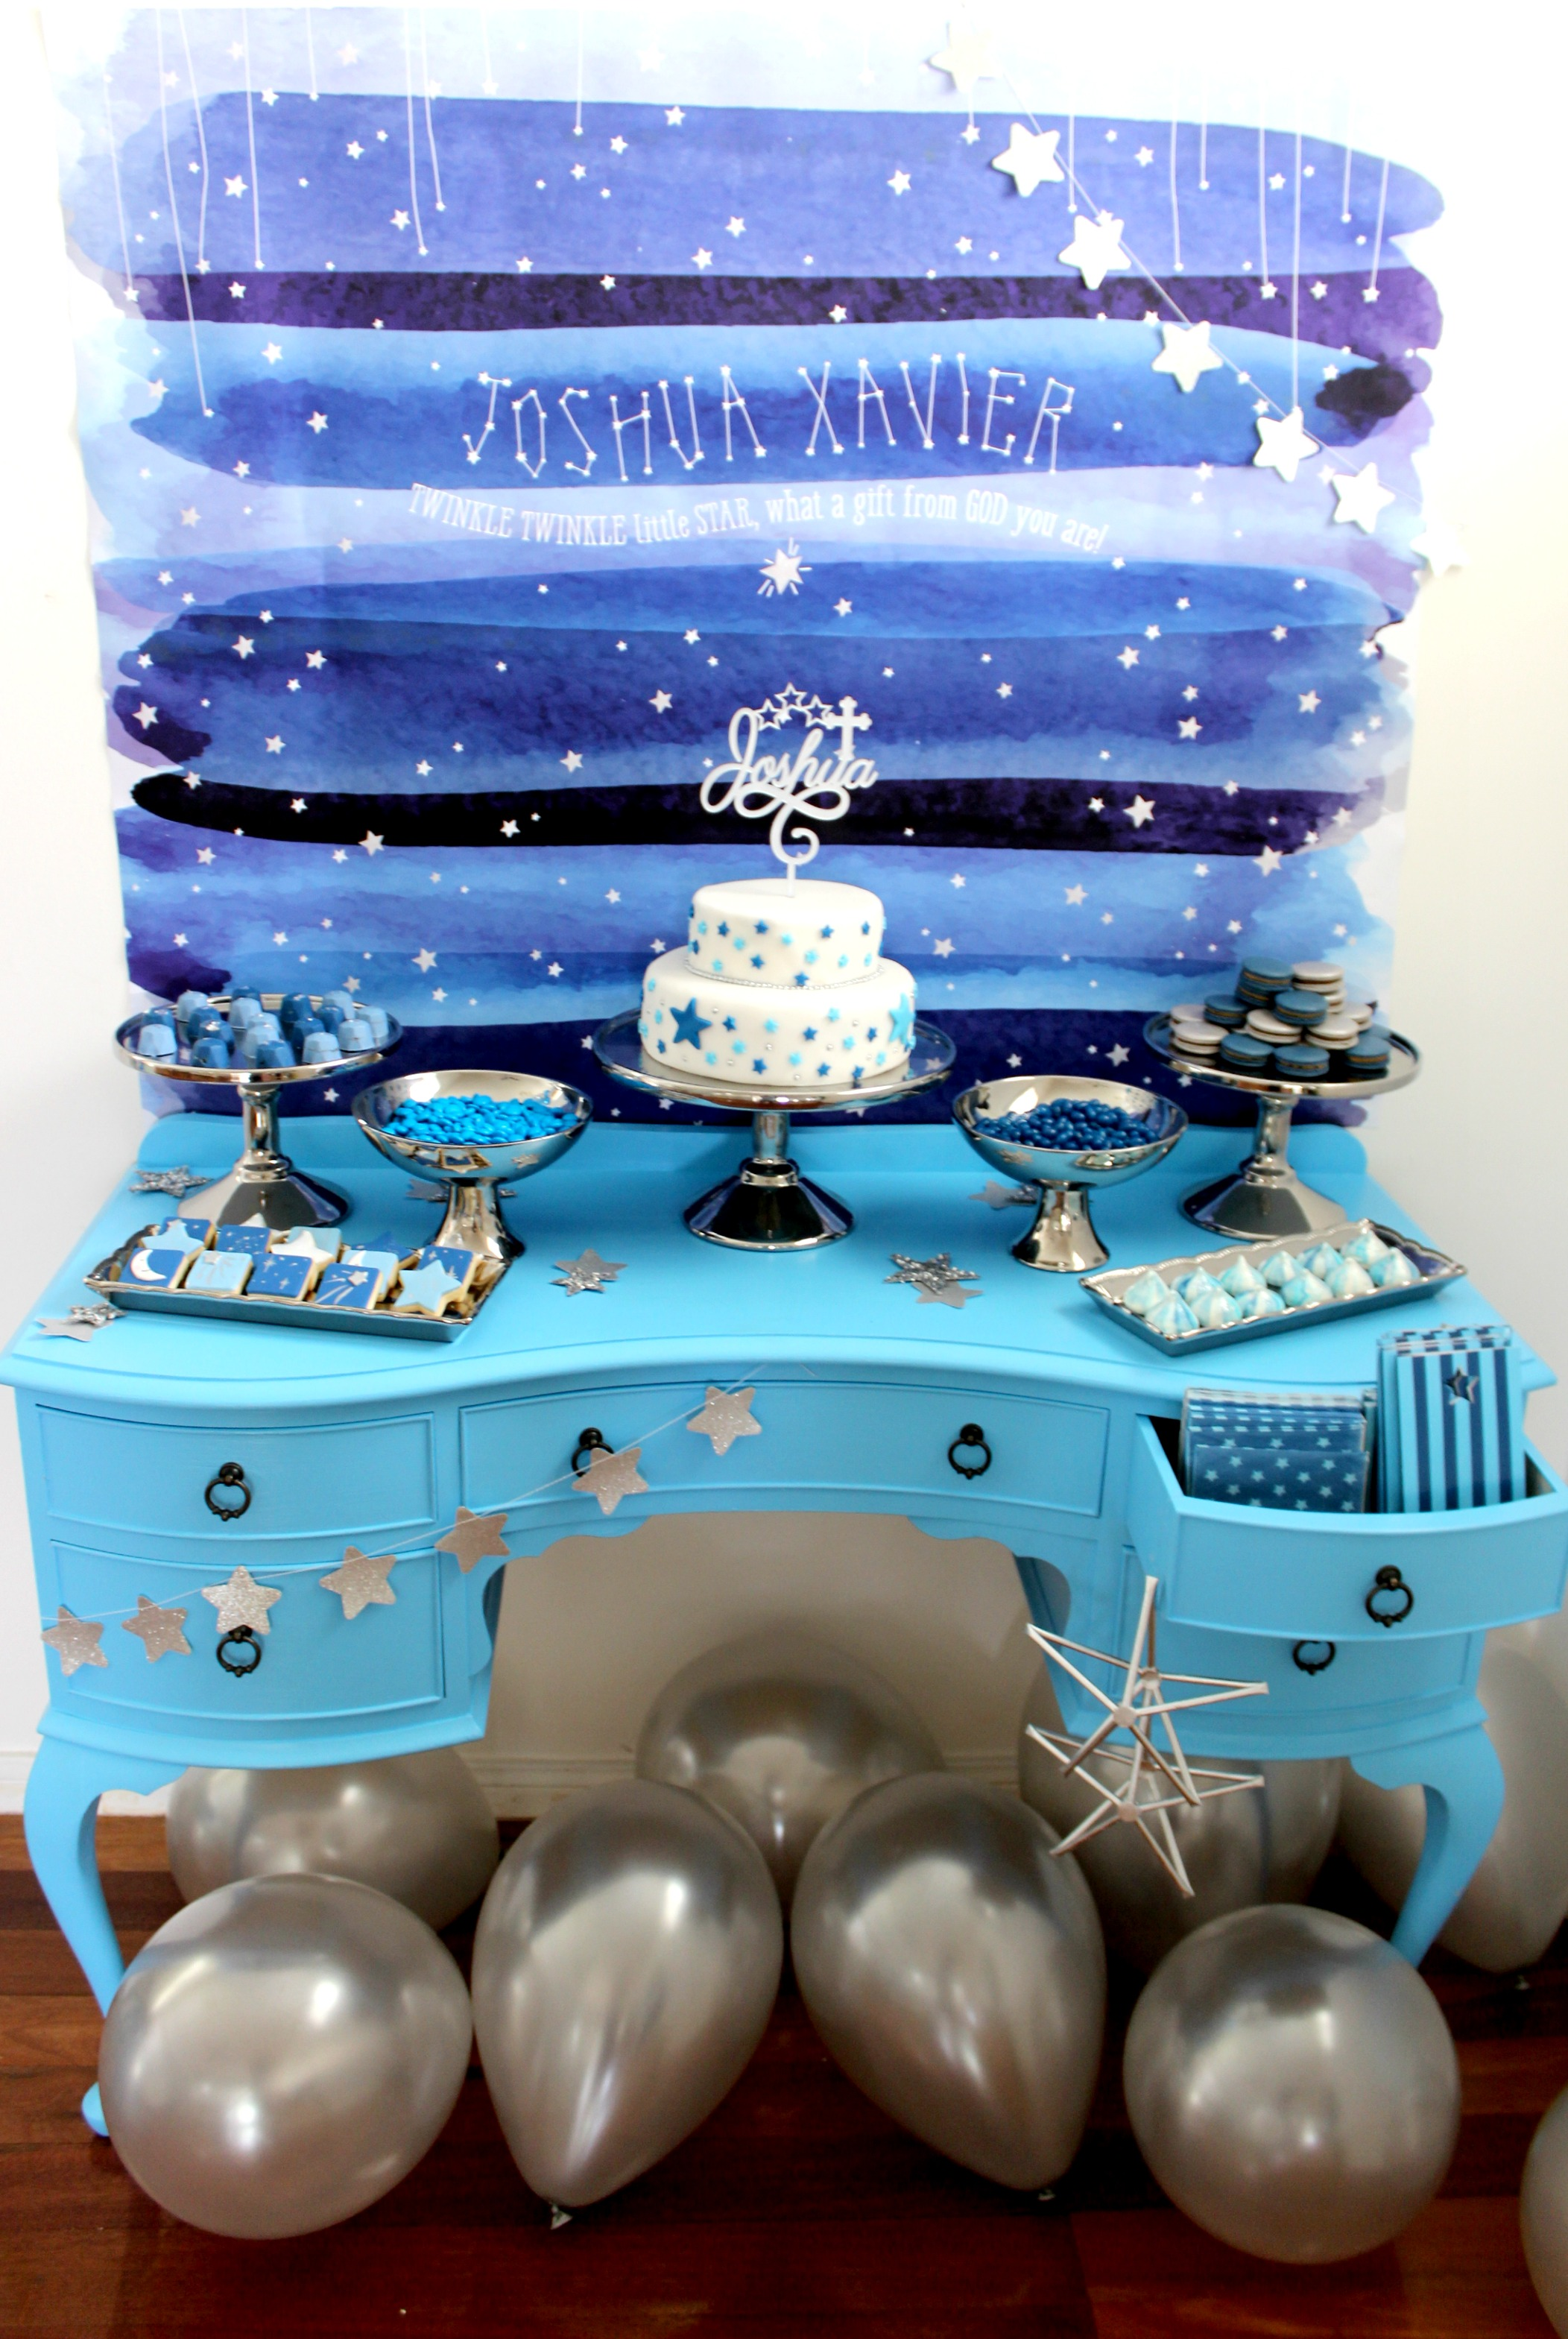 Twinkle Twinkle little star baptism dessert table - Life's Little Celebrations